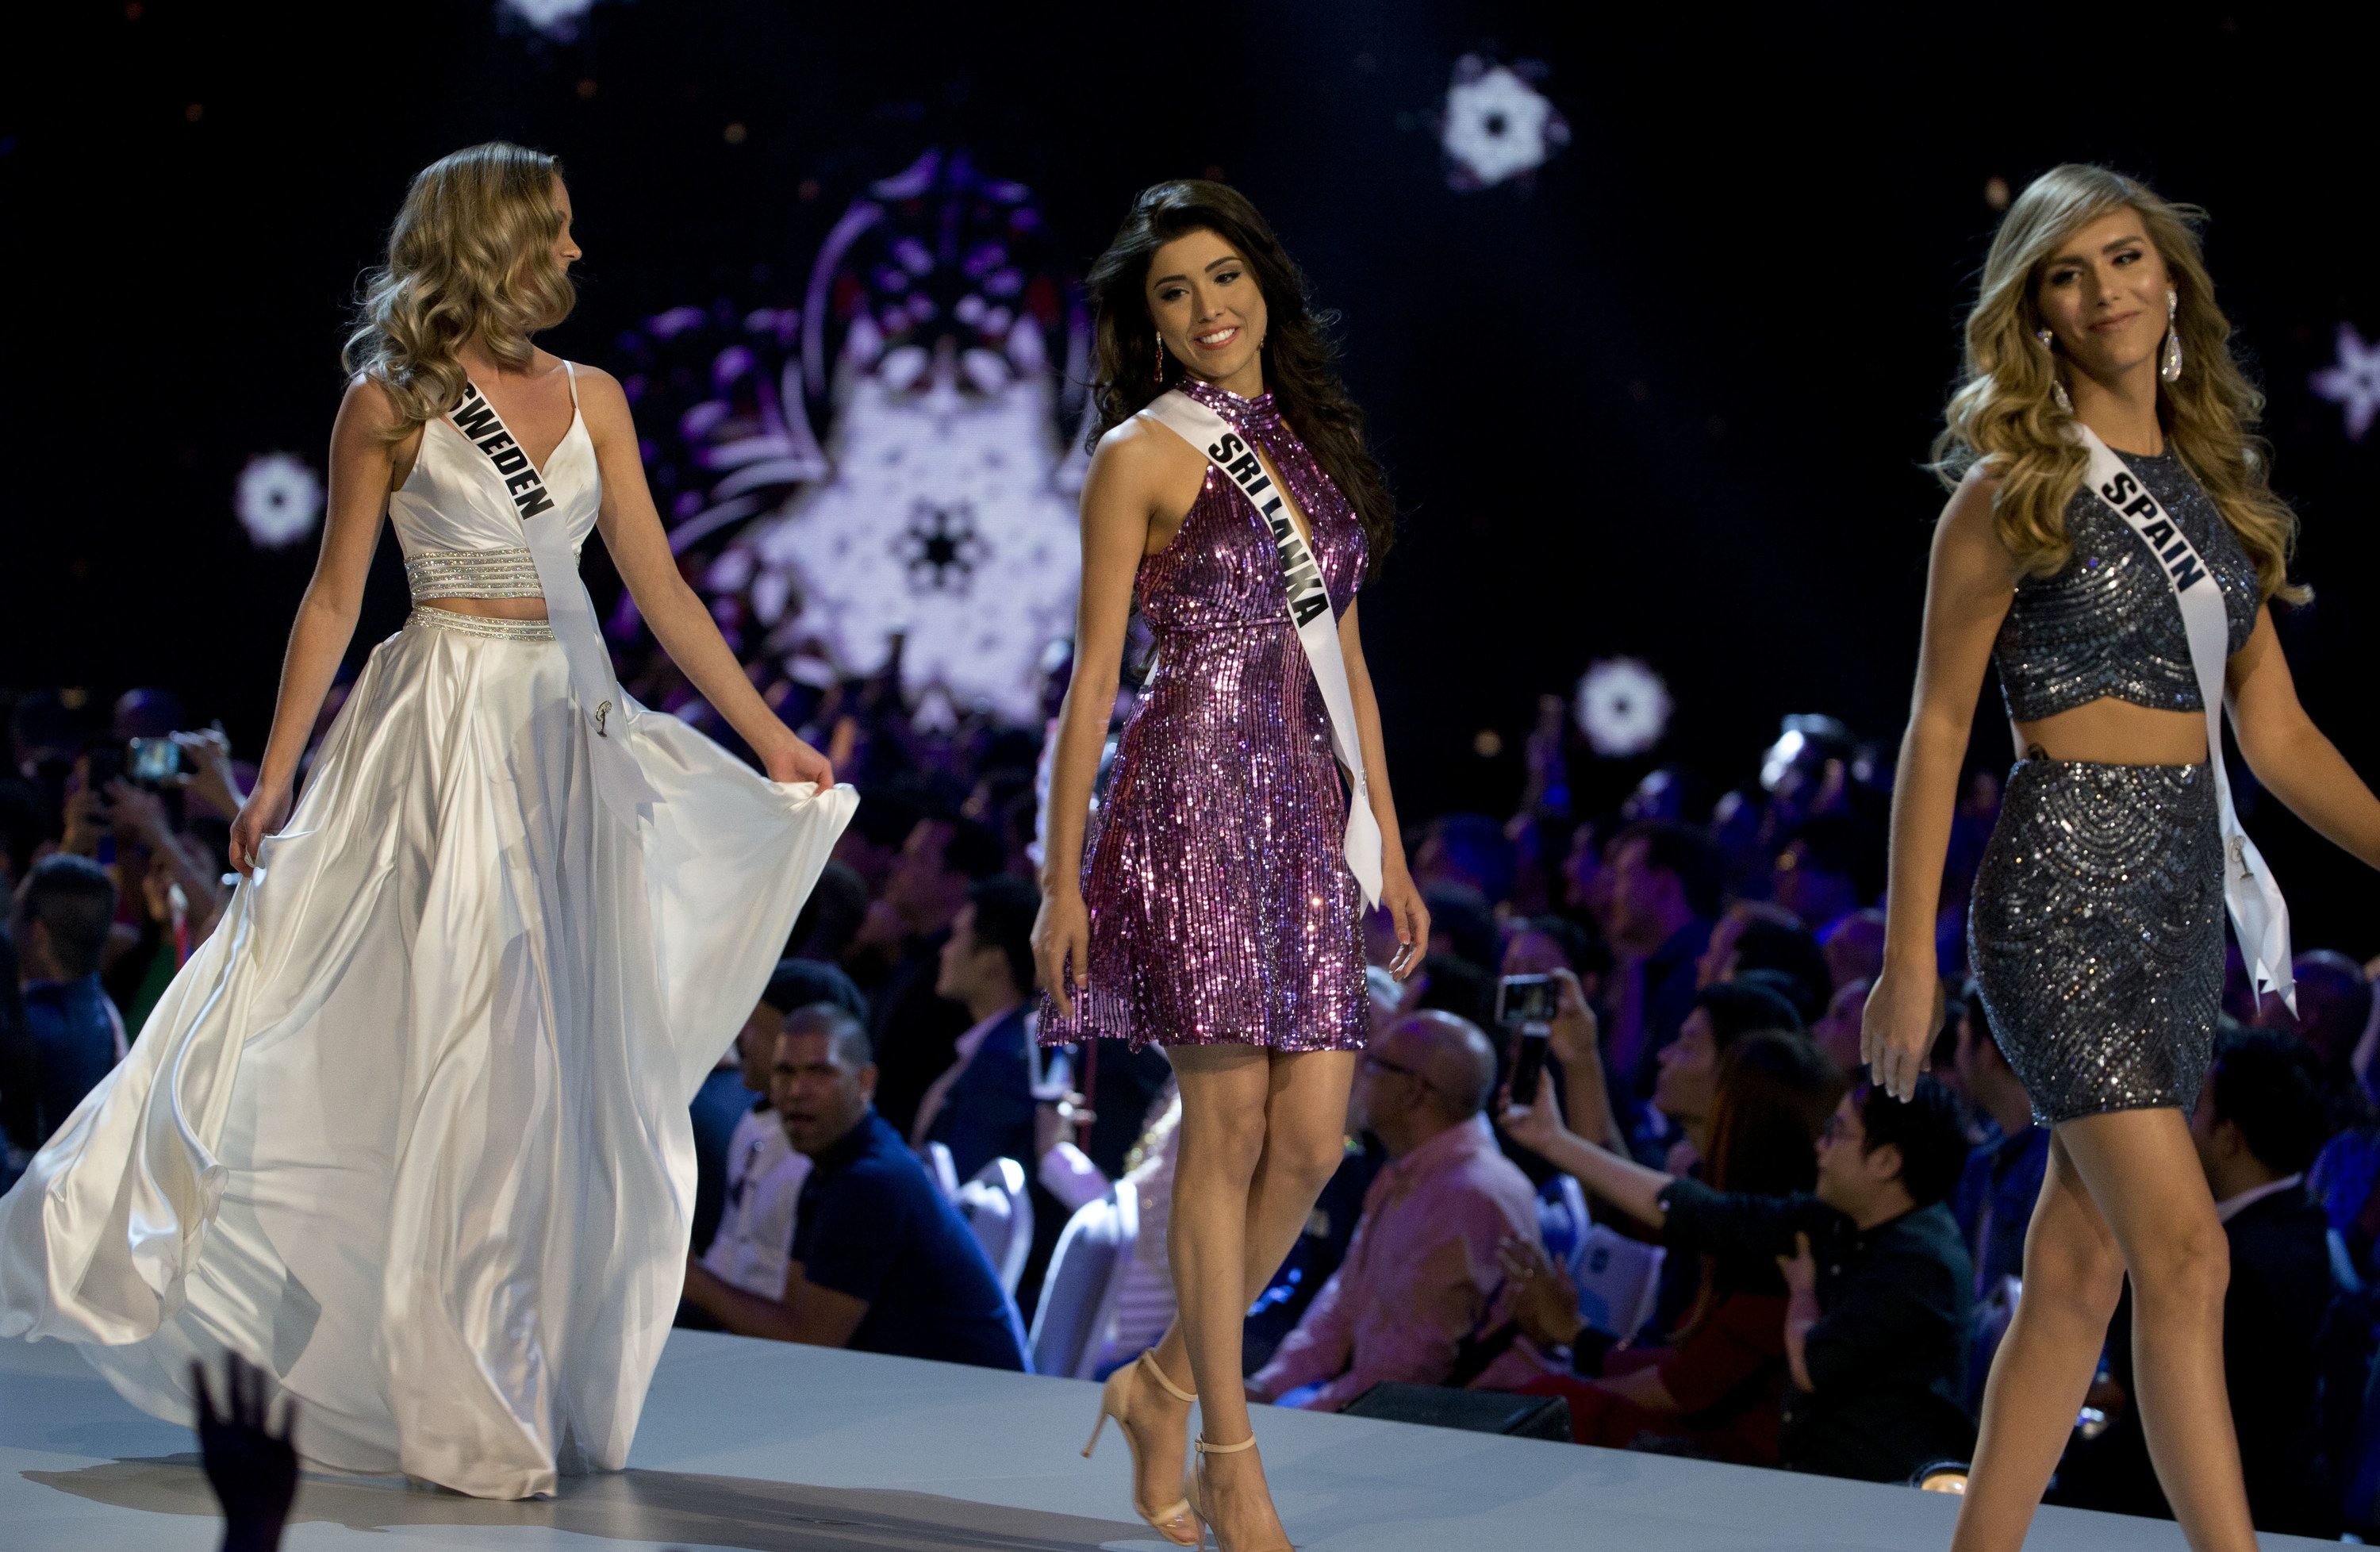 Three beauty pageant contestants on a runway